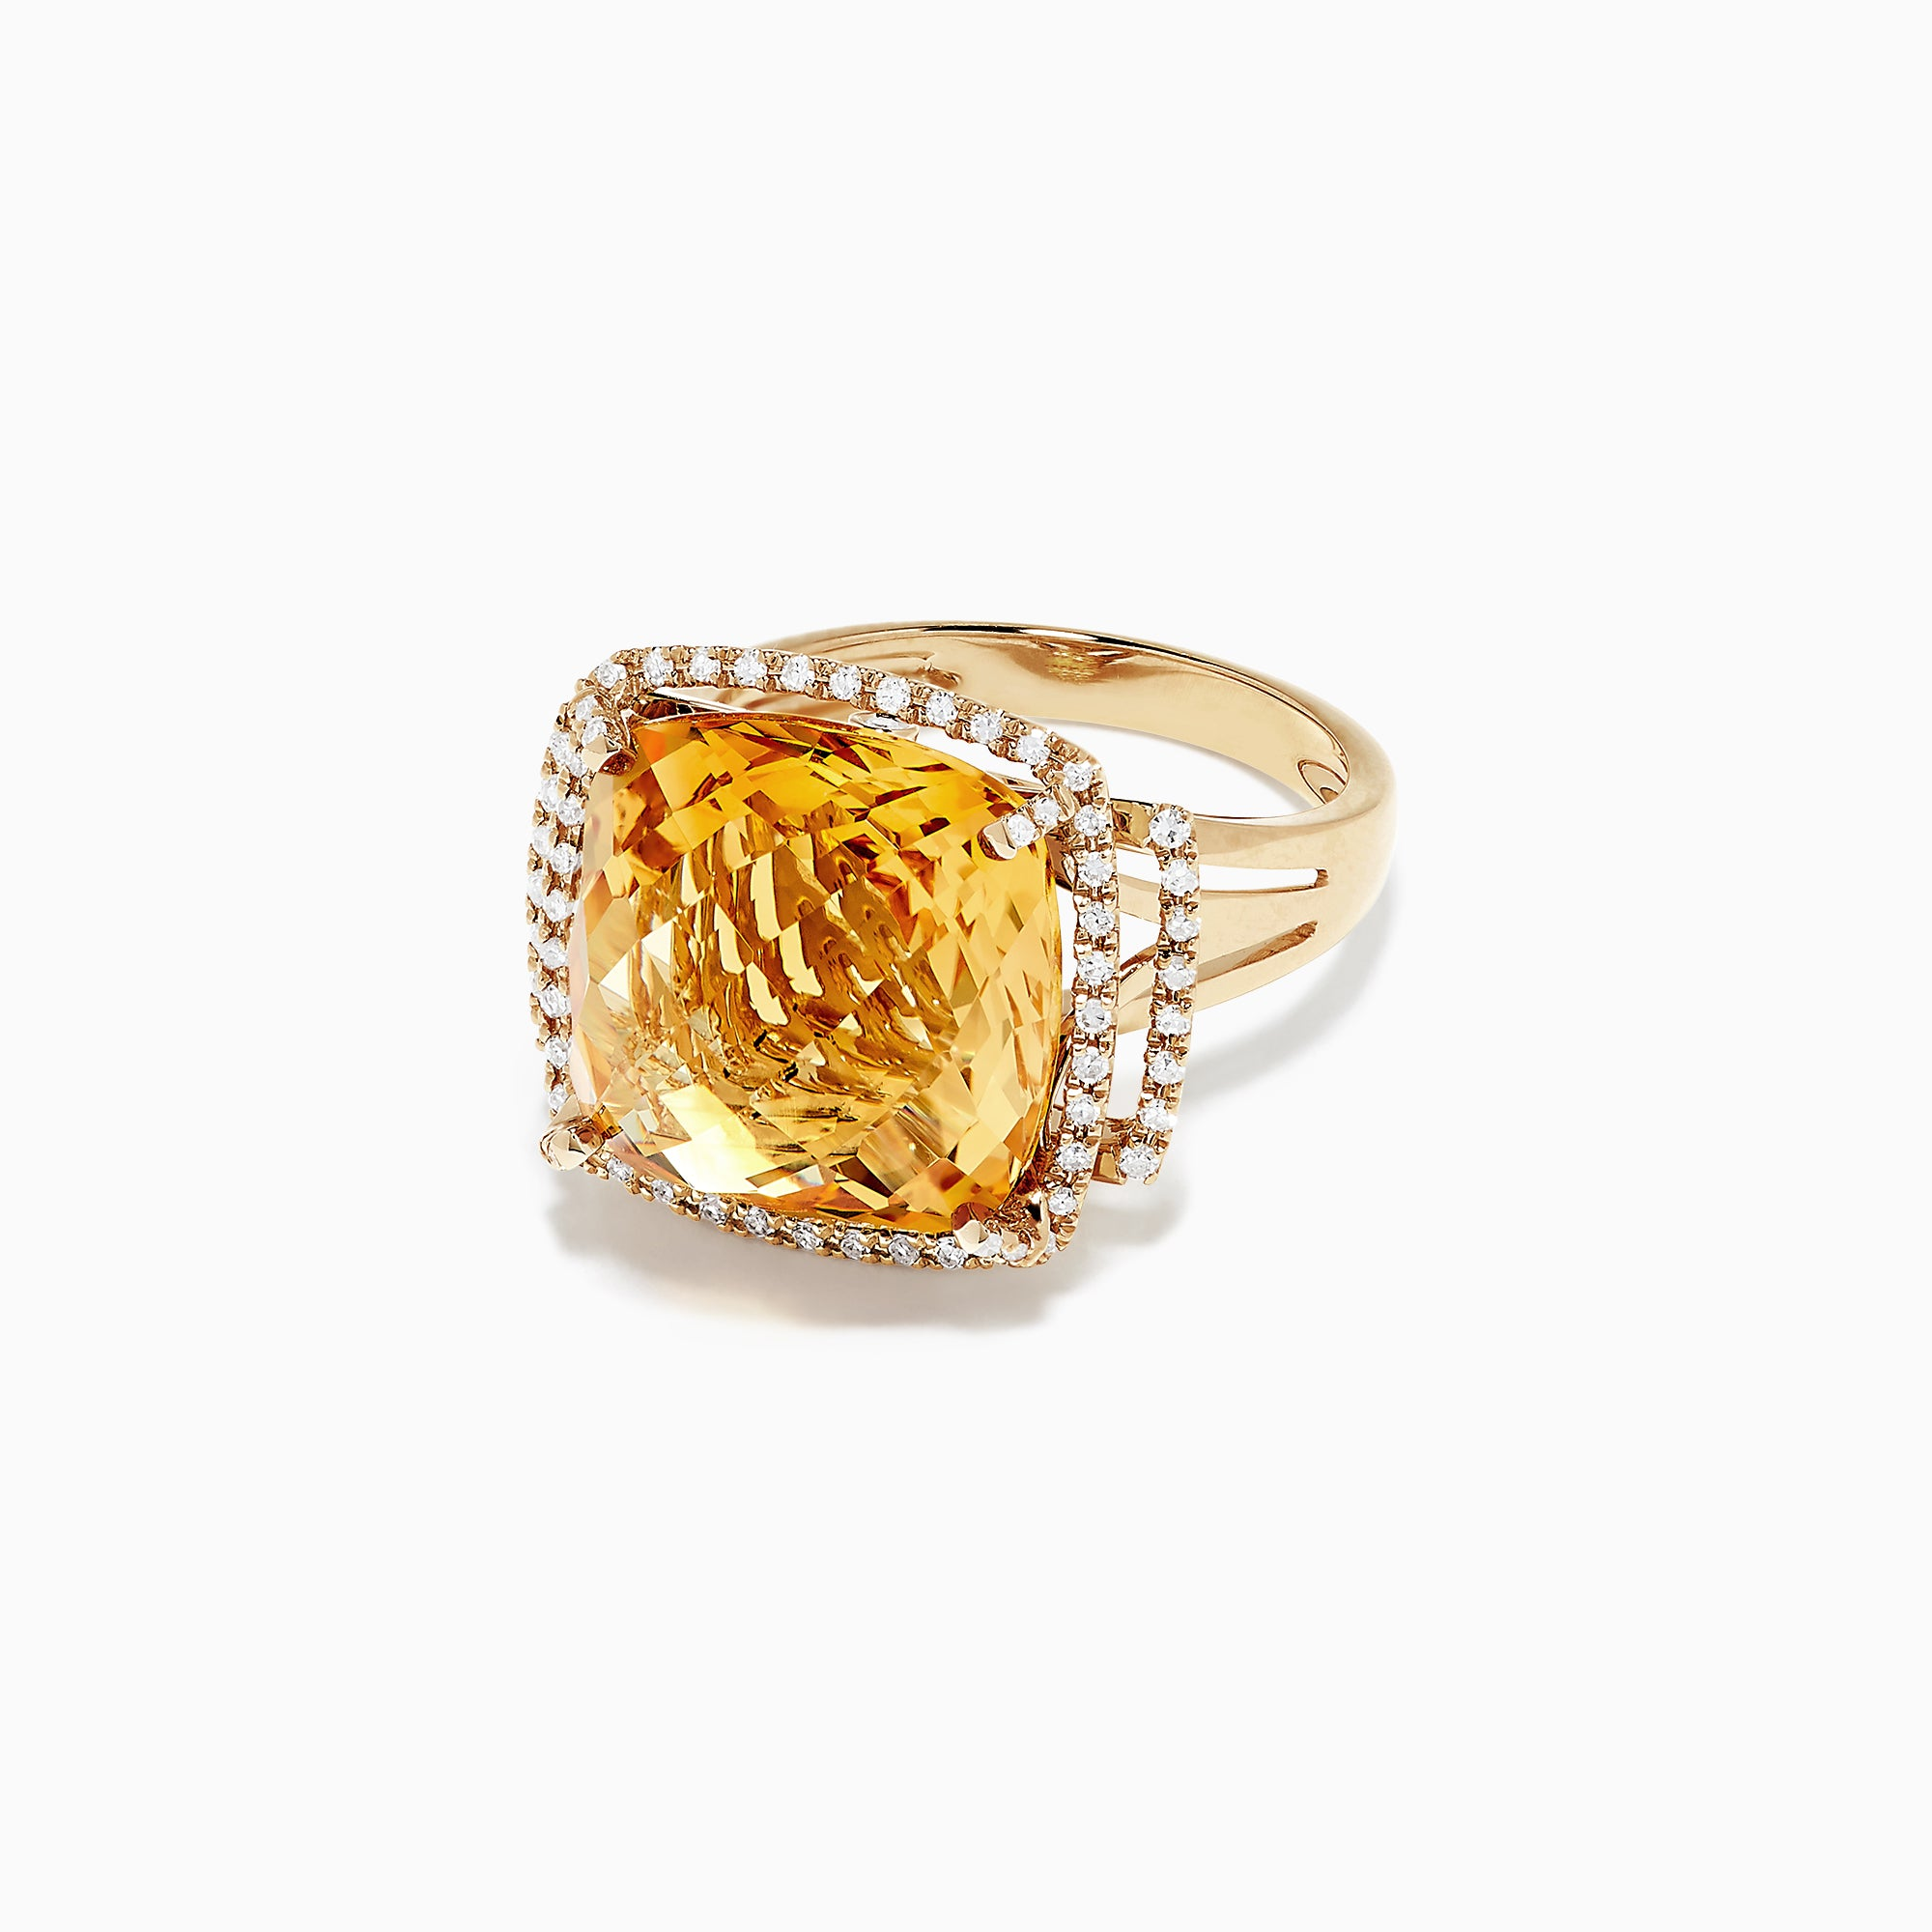 Effy Sunset 14K Yellow Gold Citrine and Diamond Ring, 10.04 TCW